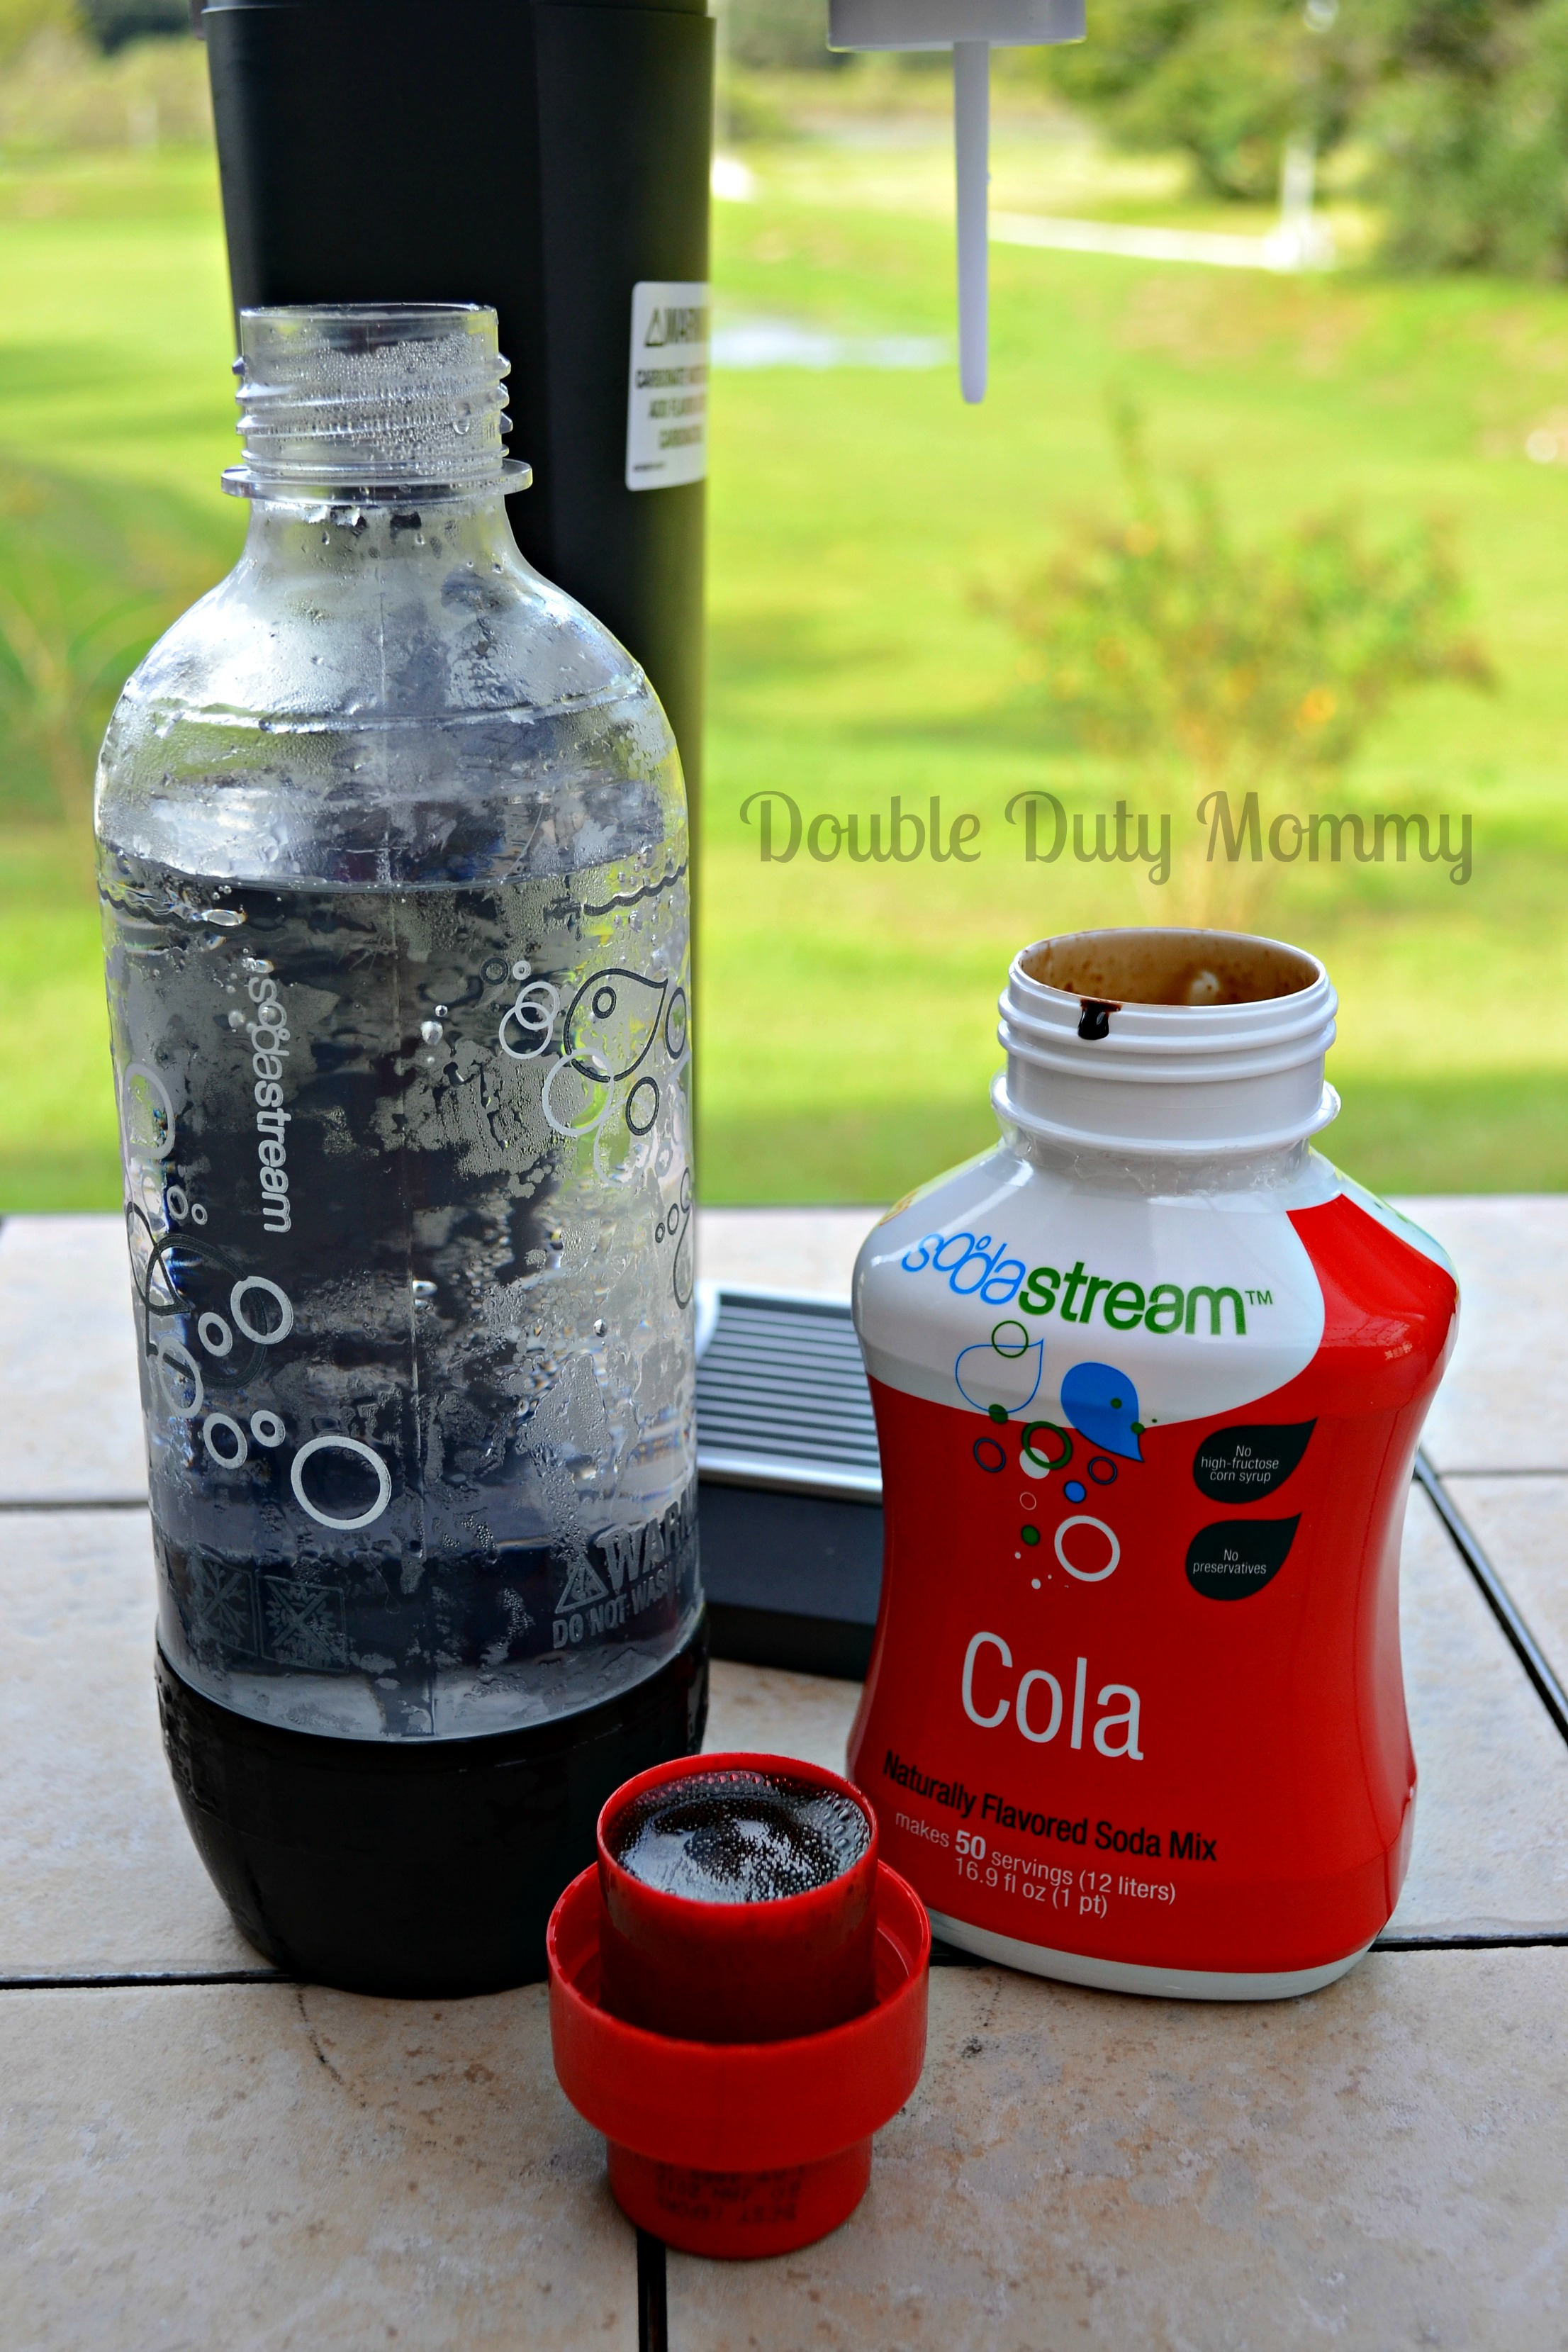 Sodastream Genesis Review And Giveaway Double Duty Mommy